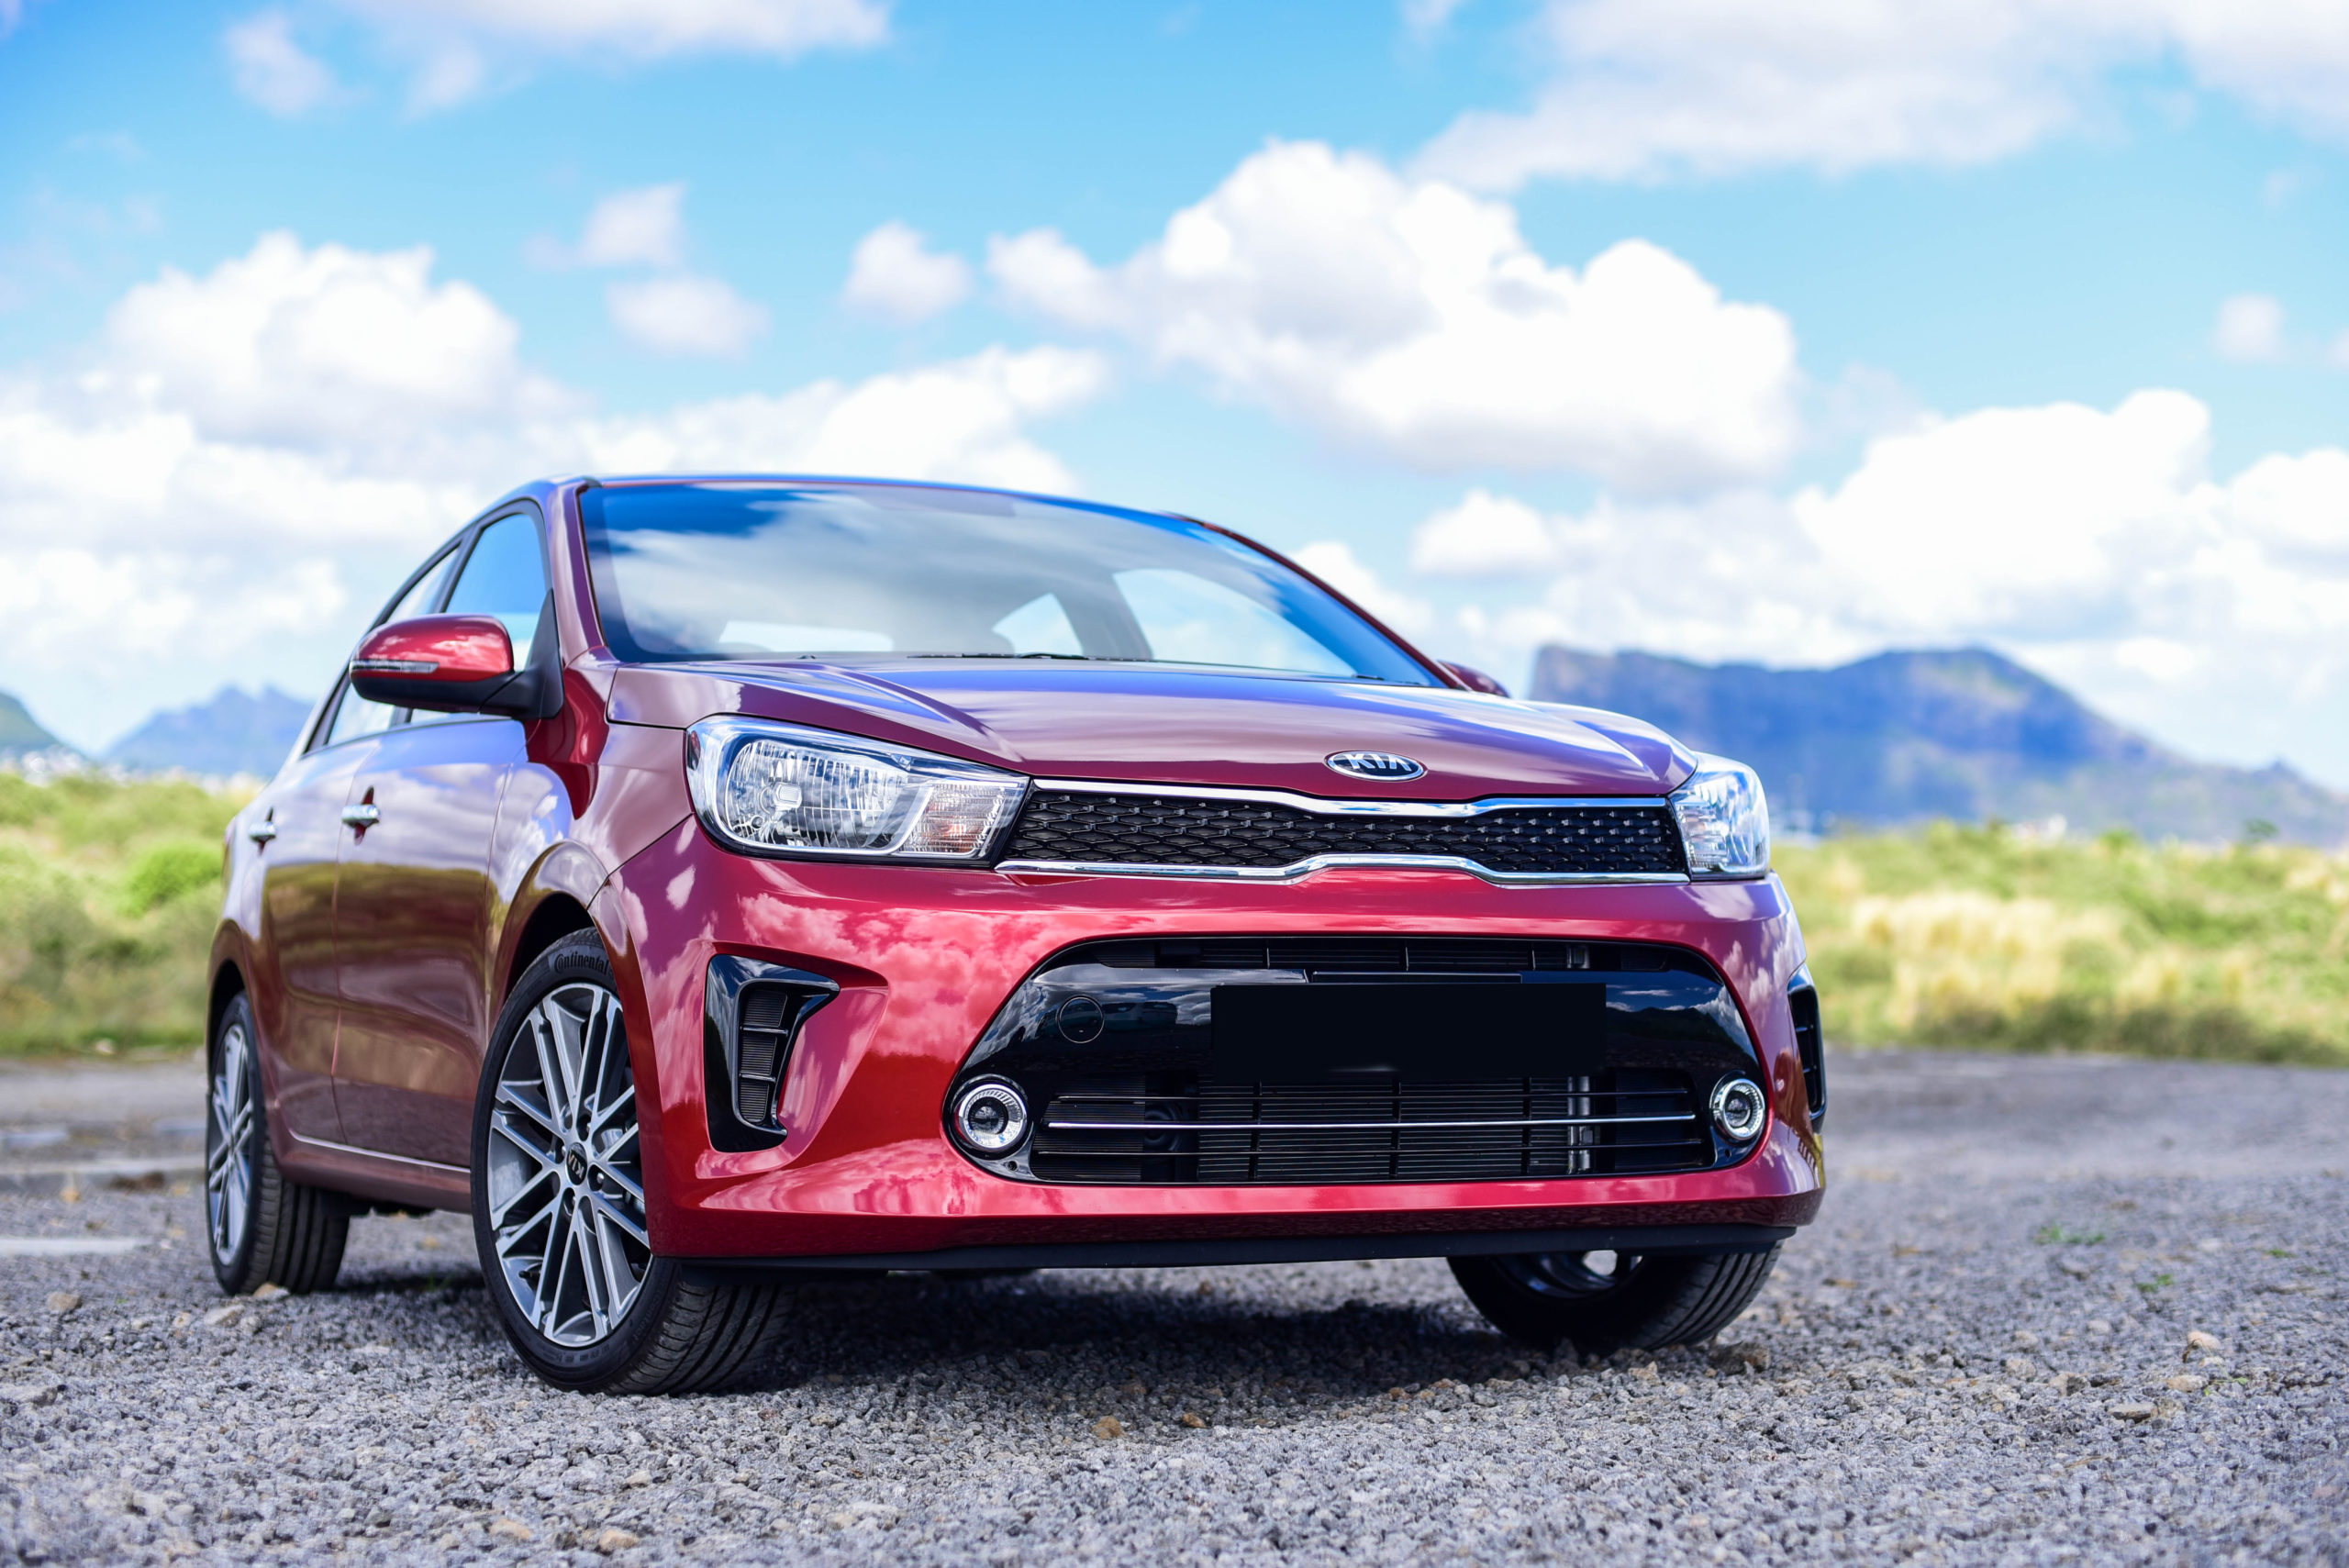 KIA Pegas - Une familiale bien en tout point | business-magazine.mu